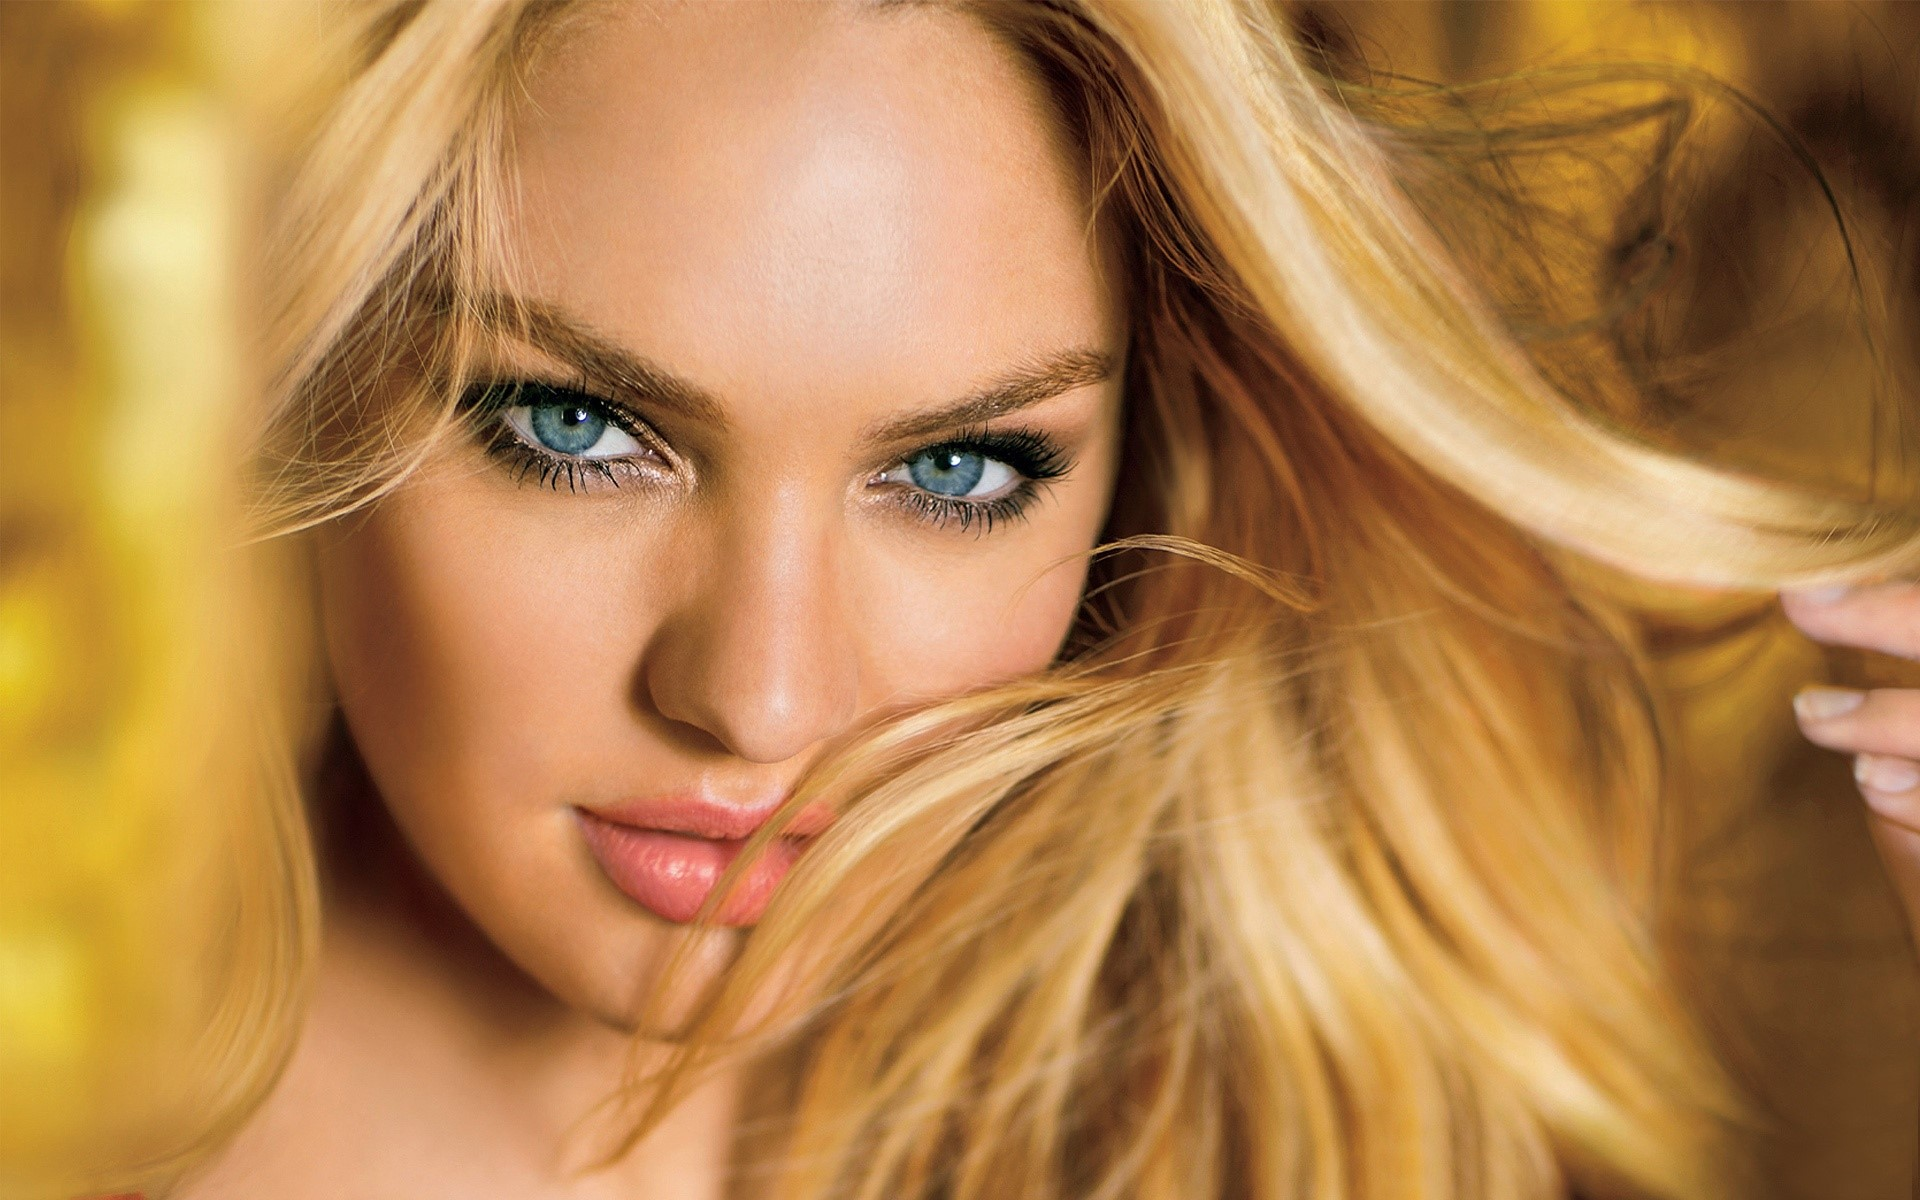 Wallpaper Candice Swanepoel